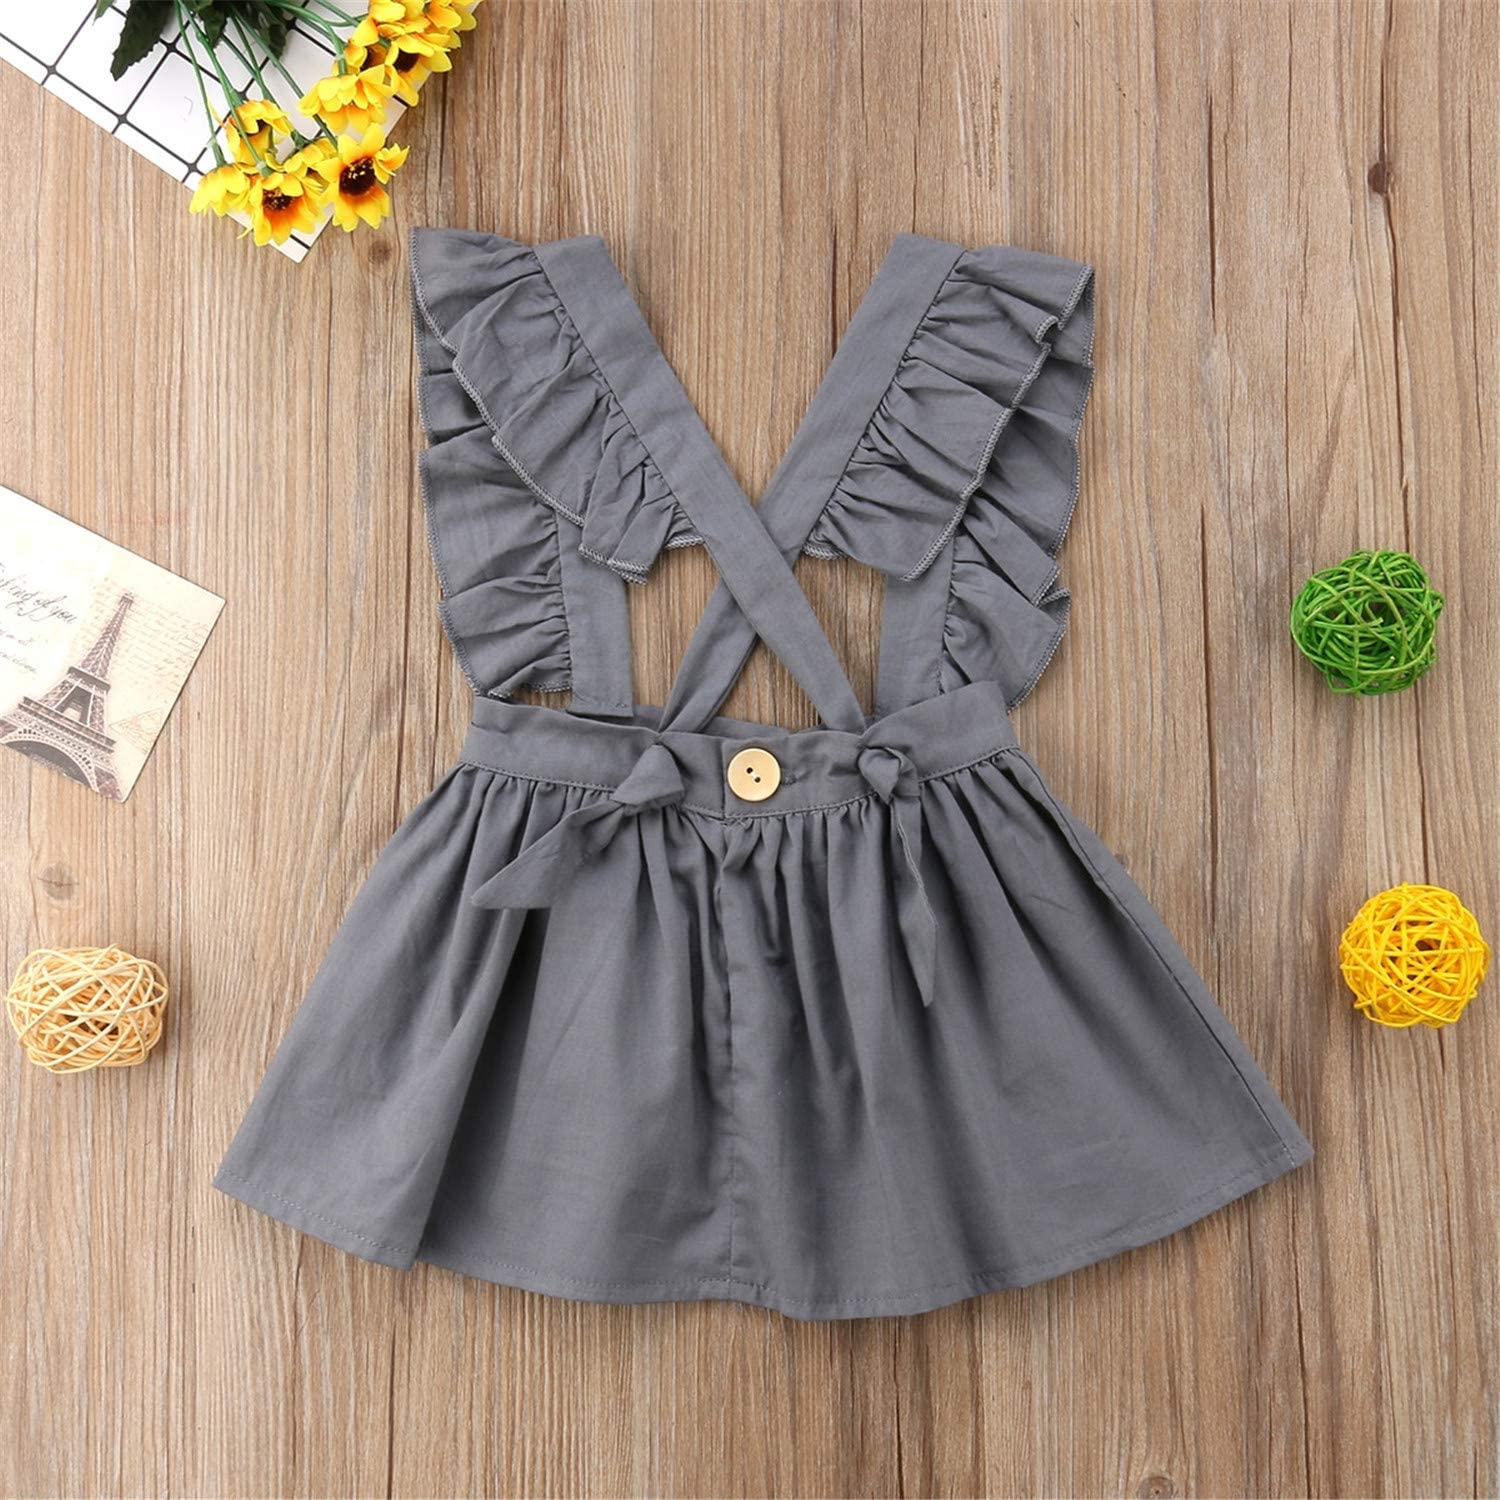 Cute Kid Baby Girls Cotton Solid Ruffle Cross Bandage Party Pageant Dress Sundress Clothes